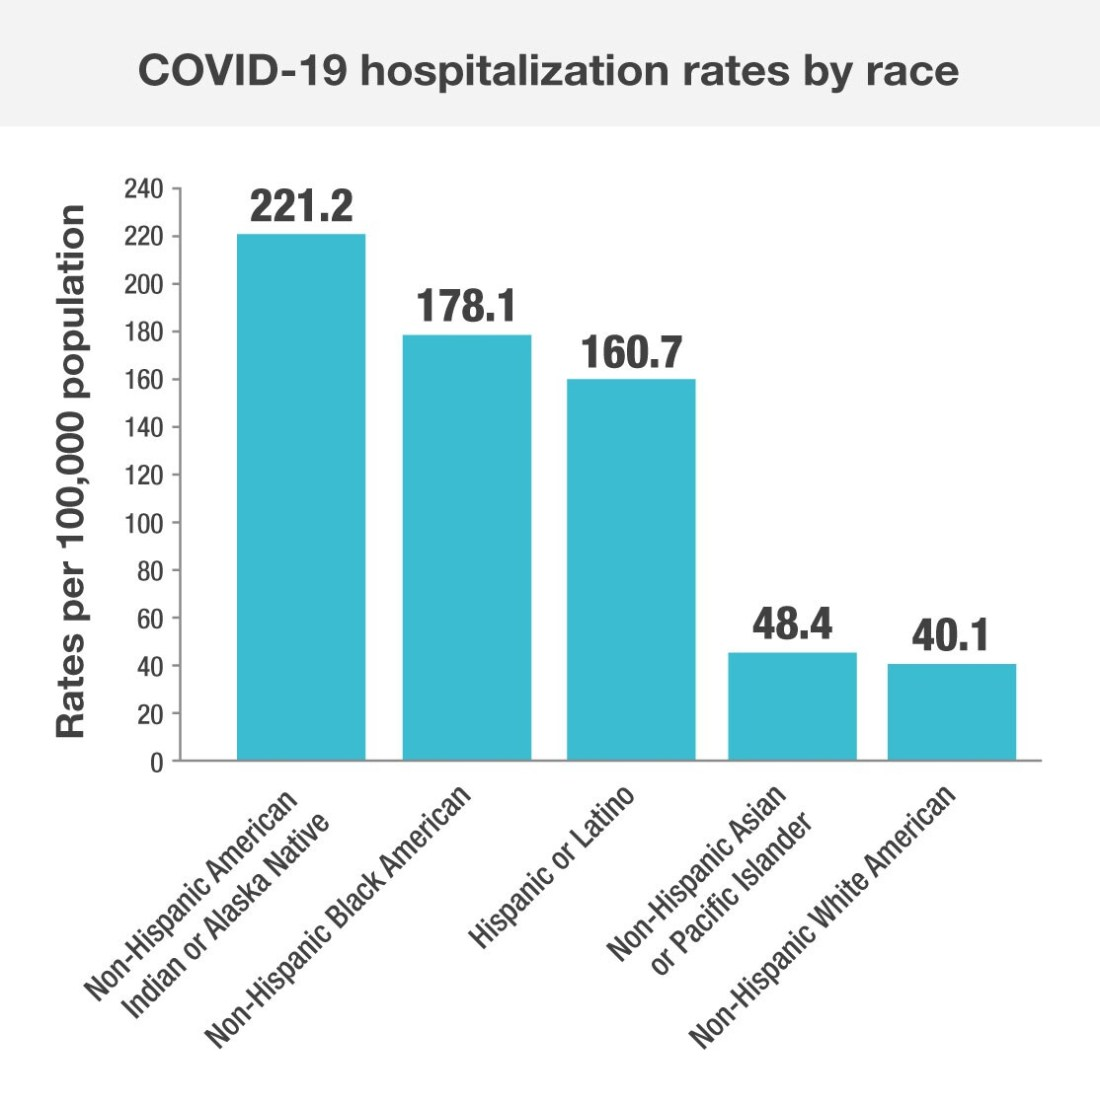 COVID-19 hospitalization rates by race